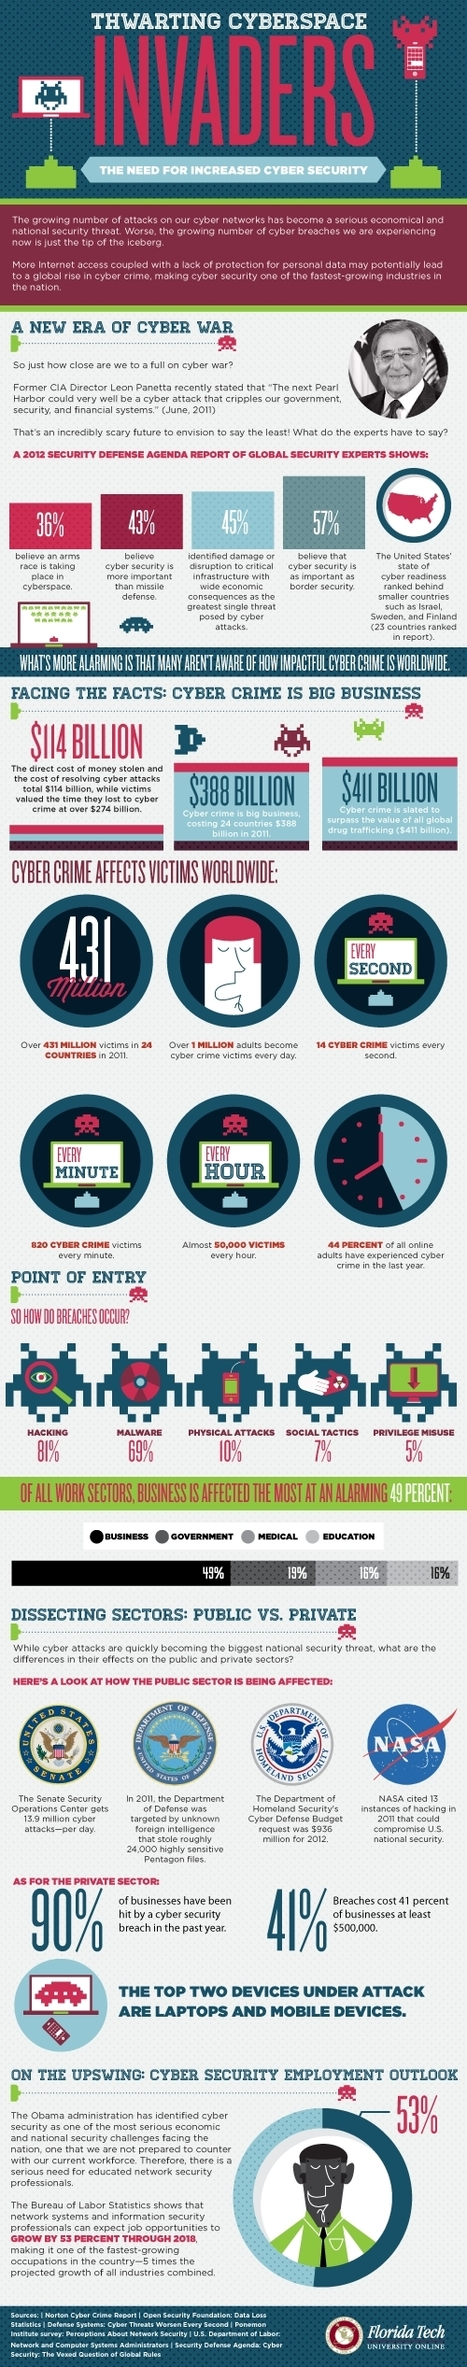 Infographic: Thwarting cyberspace invaders | Personal Branding and Professional networks - @TOOLS_BOX_INC @TOOLS_BOX_EUR @TOOLS_BOX_DEV @TOOLS_BOX_FR @TOOLS_BOX_FR @P_TREBAUL @Best_OfTweets | Scoop.it